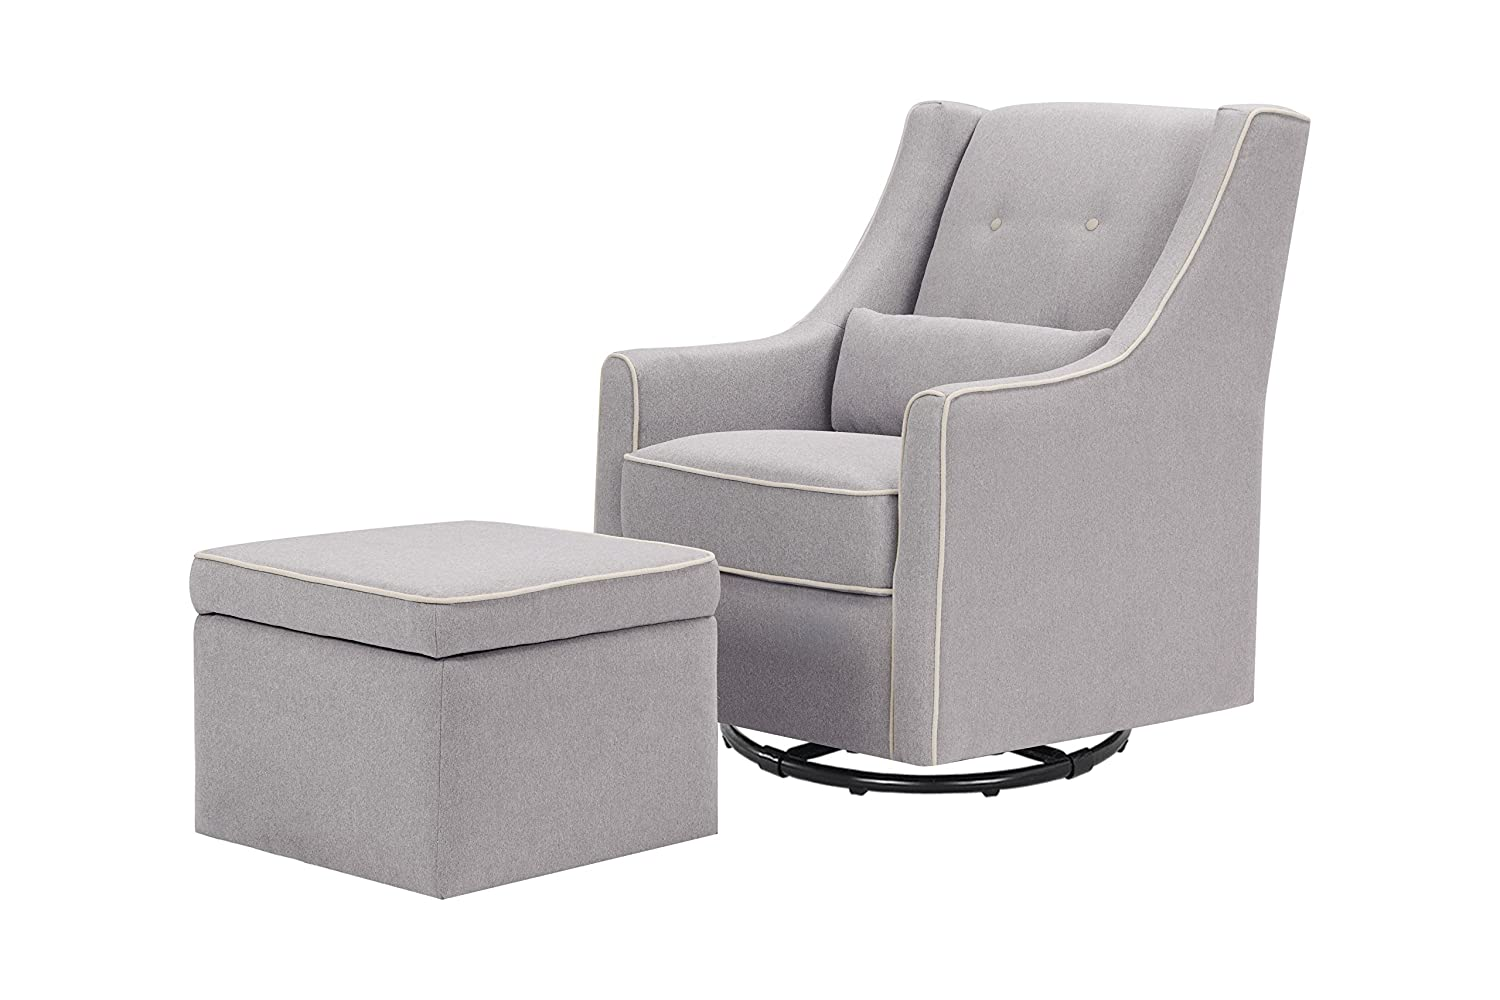 DaVinci Owen Glider and Storage Ottoman, Grey with Cream Piping